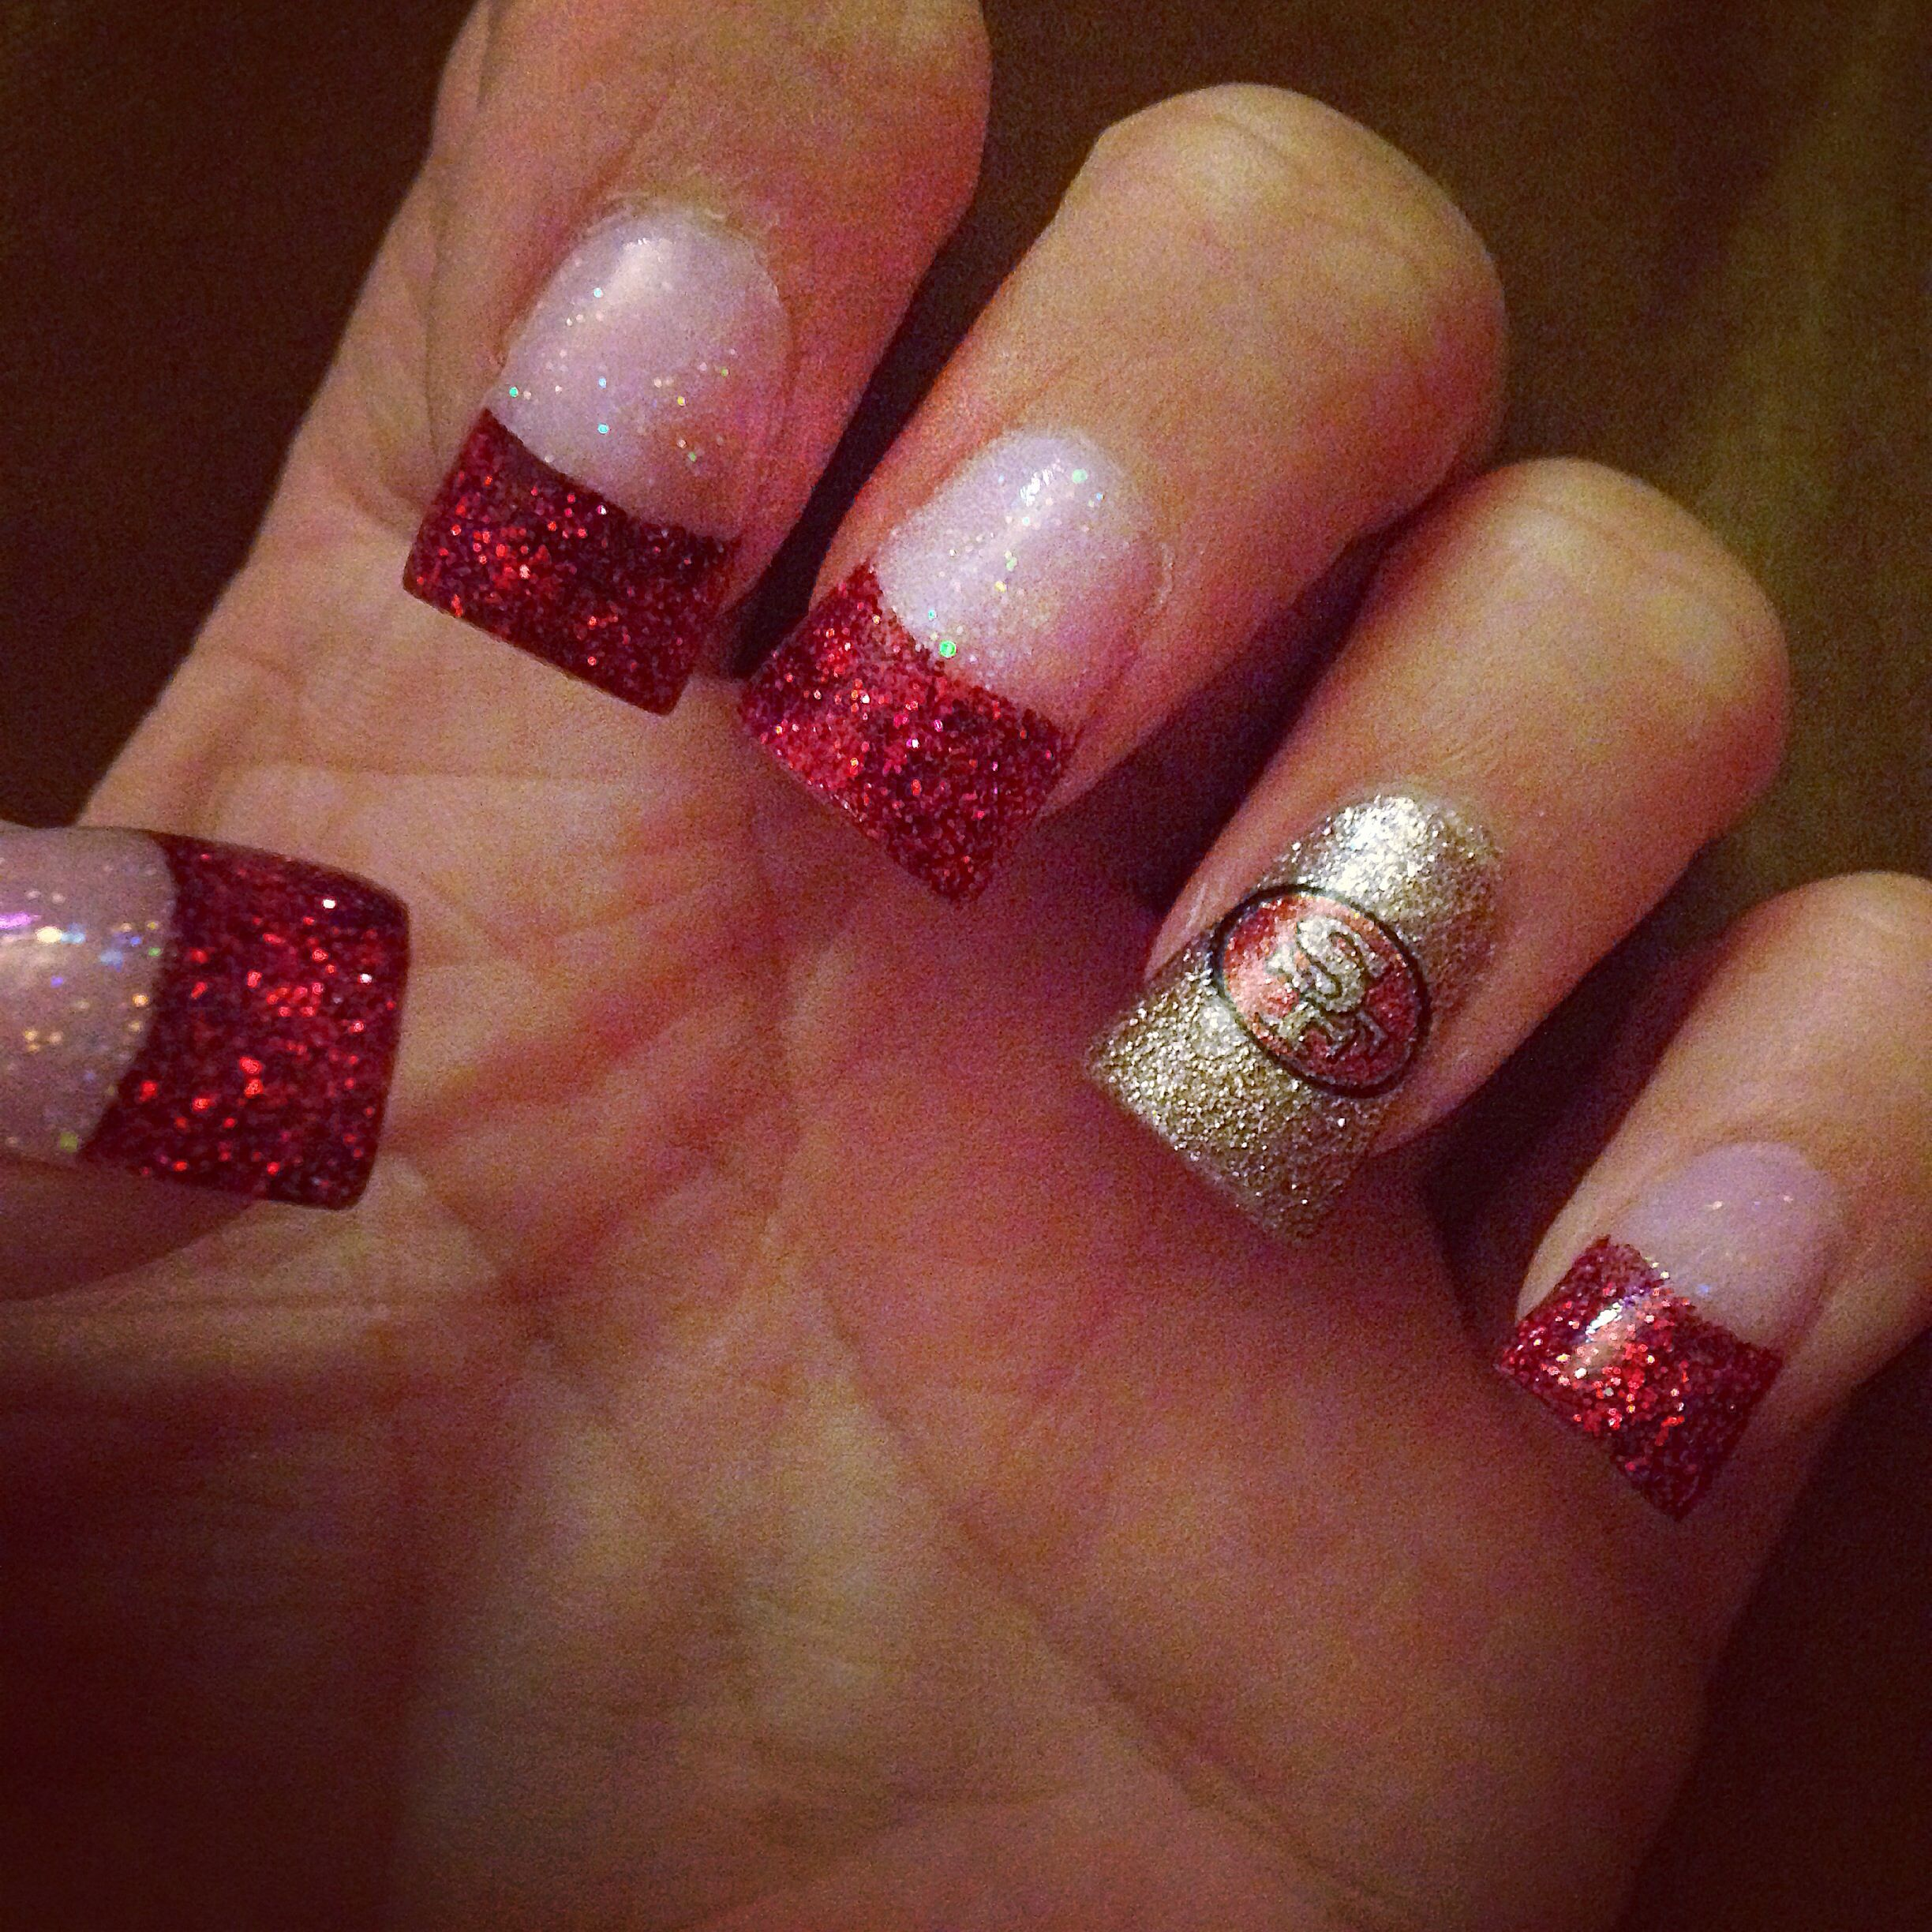 49ers nails | Nails | Pinterest | 49ers nails, Glittery nails and ...